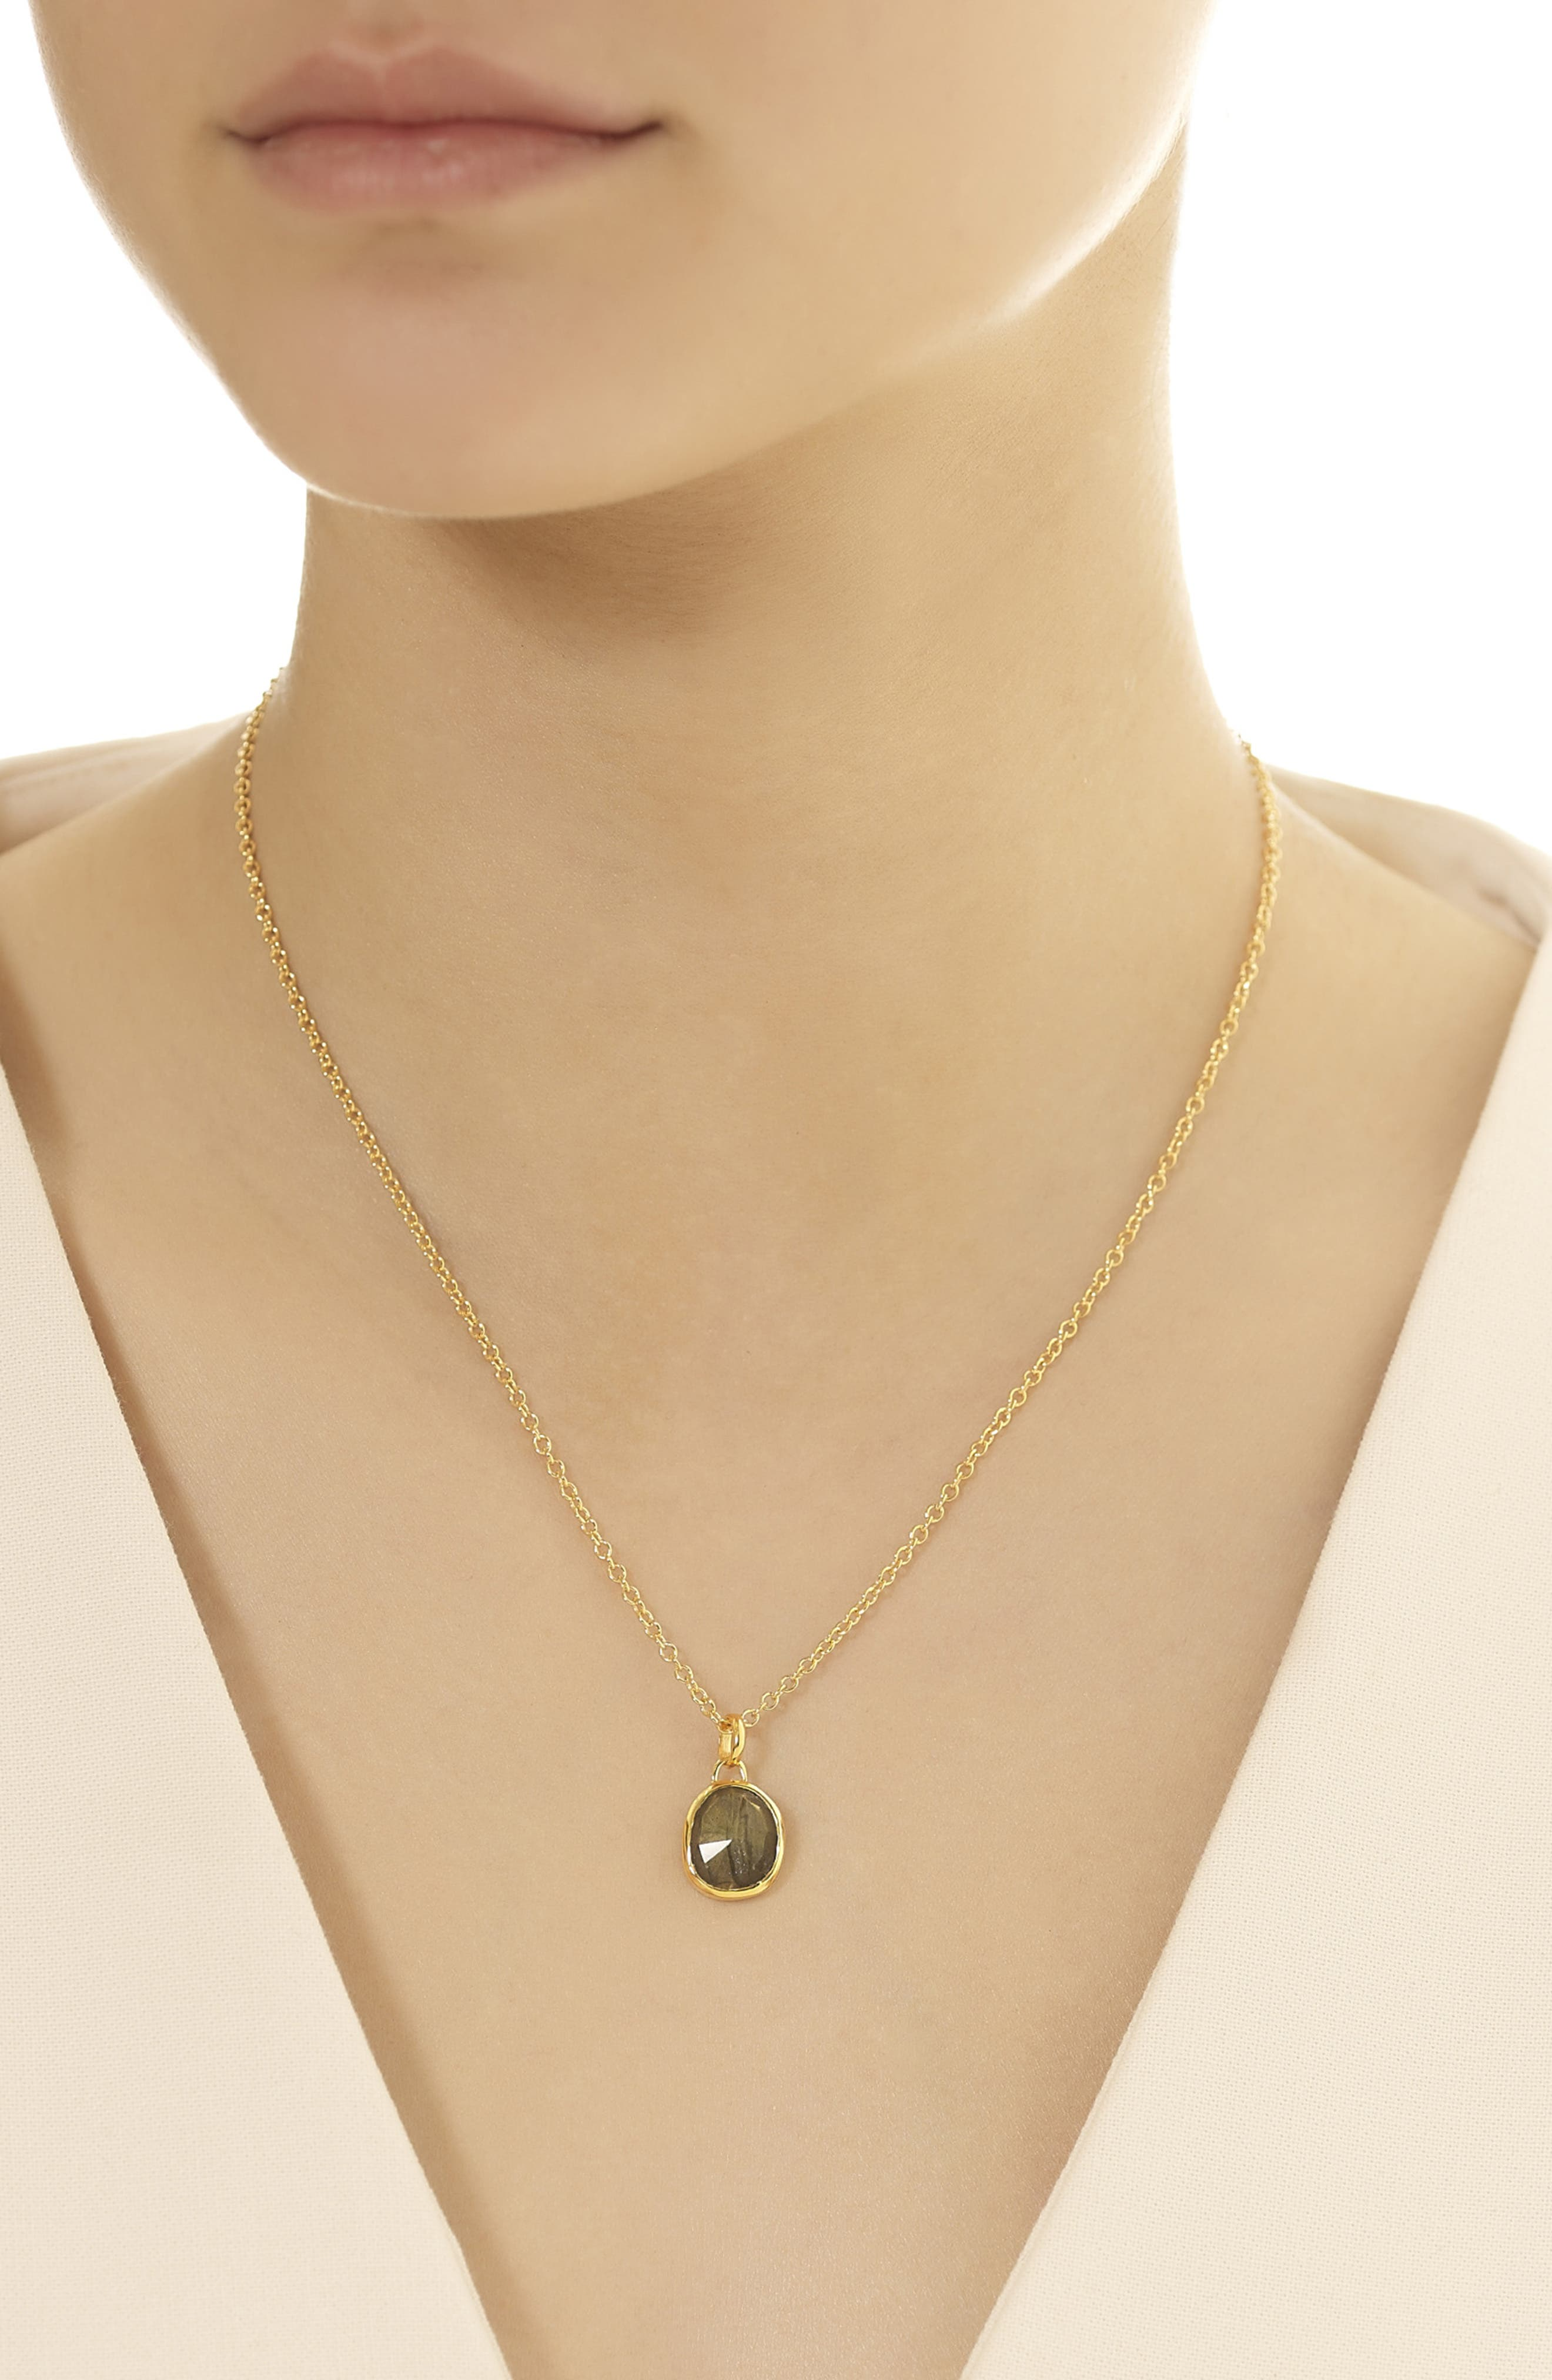 Rolo Chain Necklace,                             Alternate thumbnail 2, color,                             YELLOW GOLD